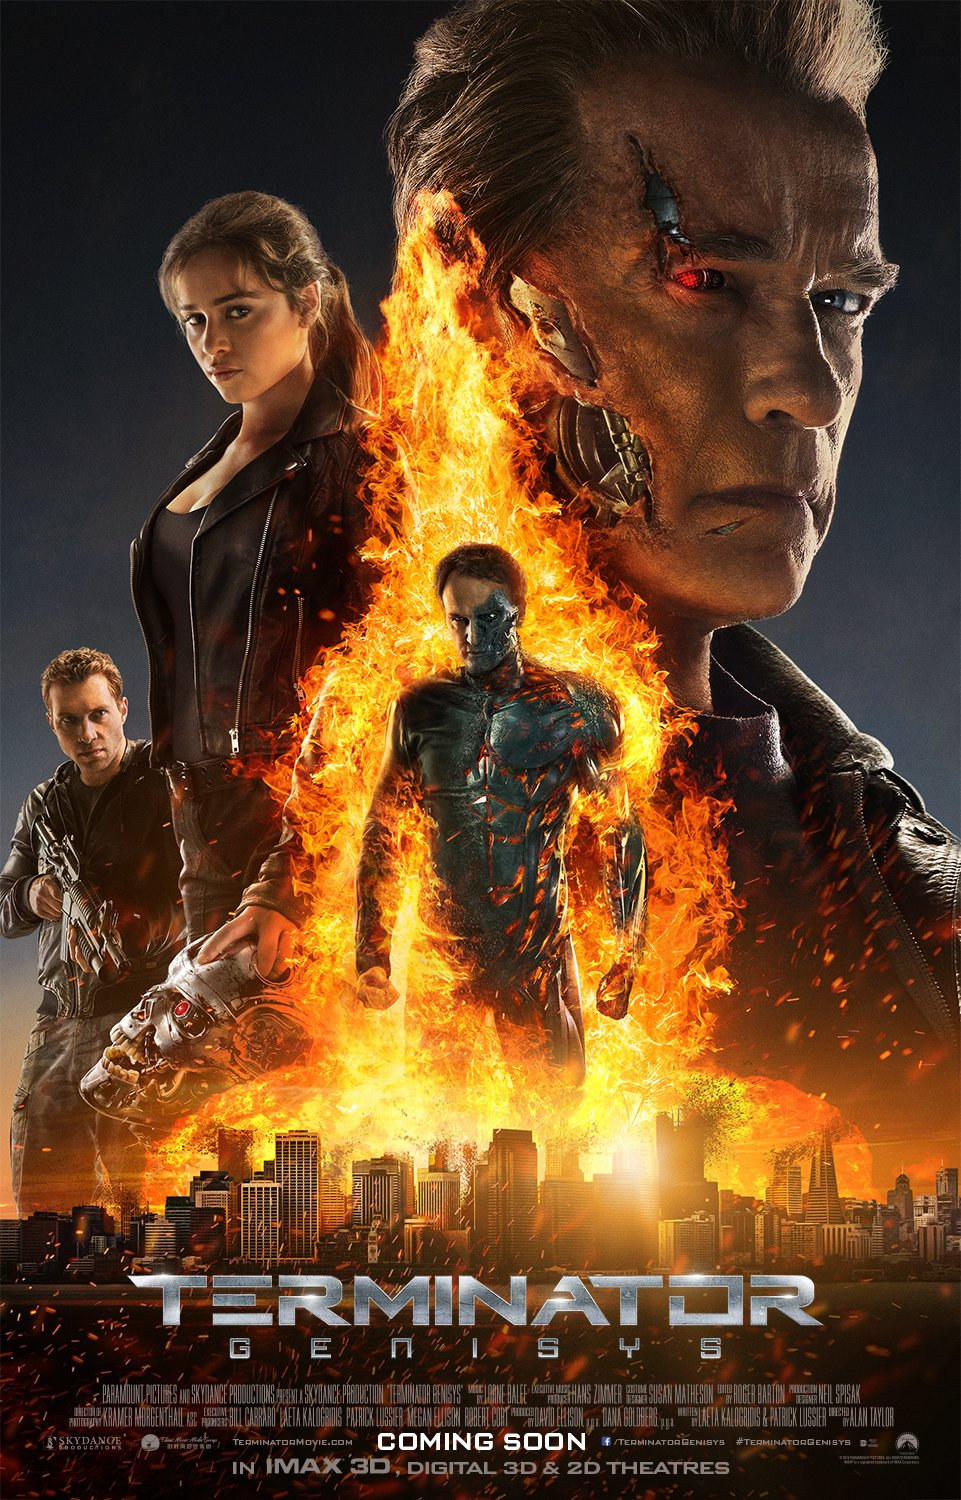 Terminator Genisys – Payoff poster